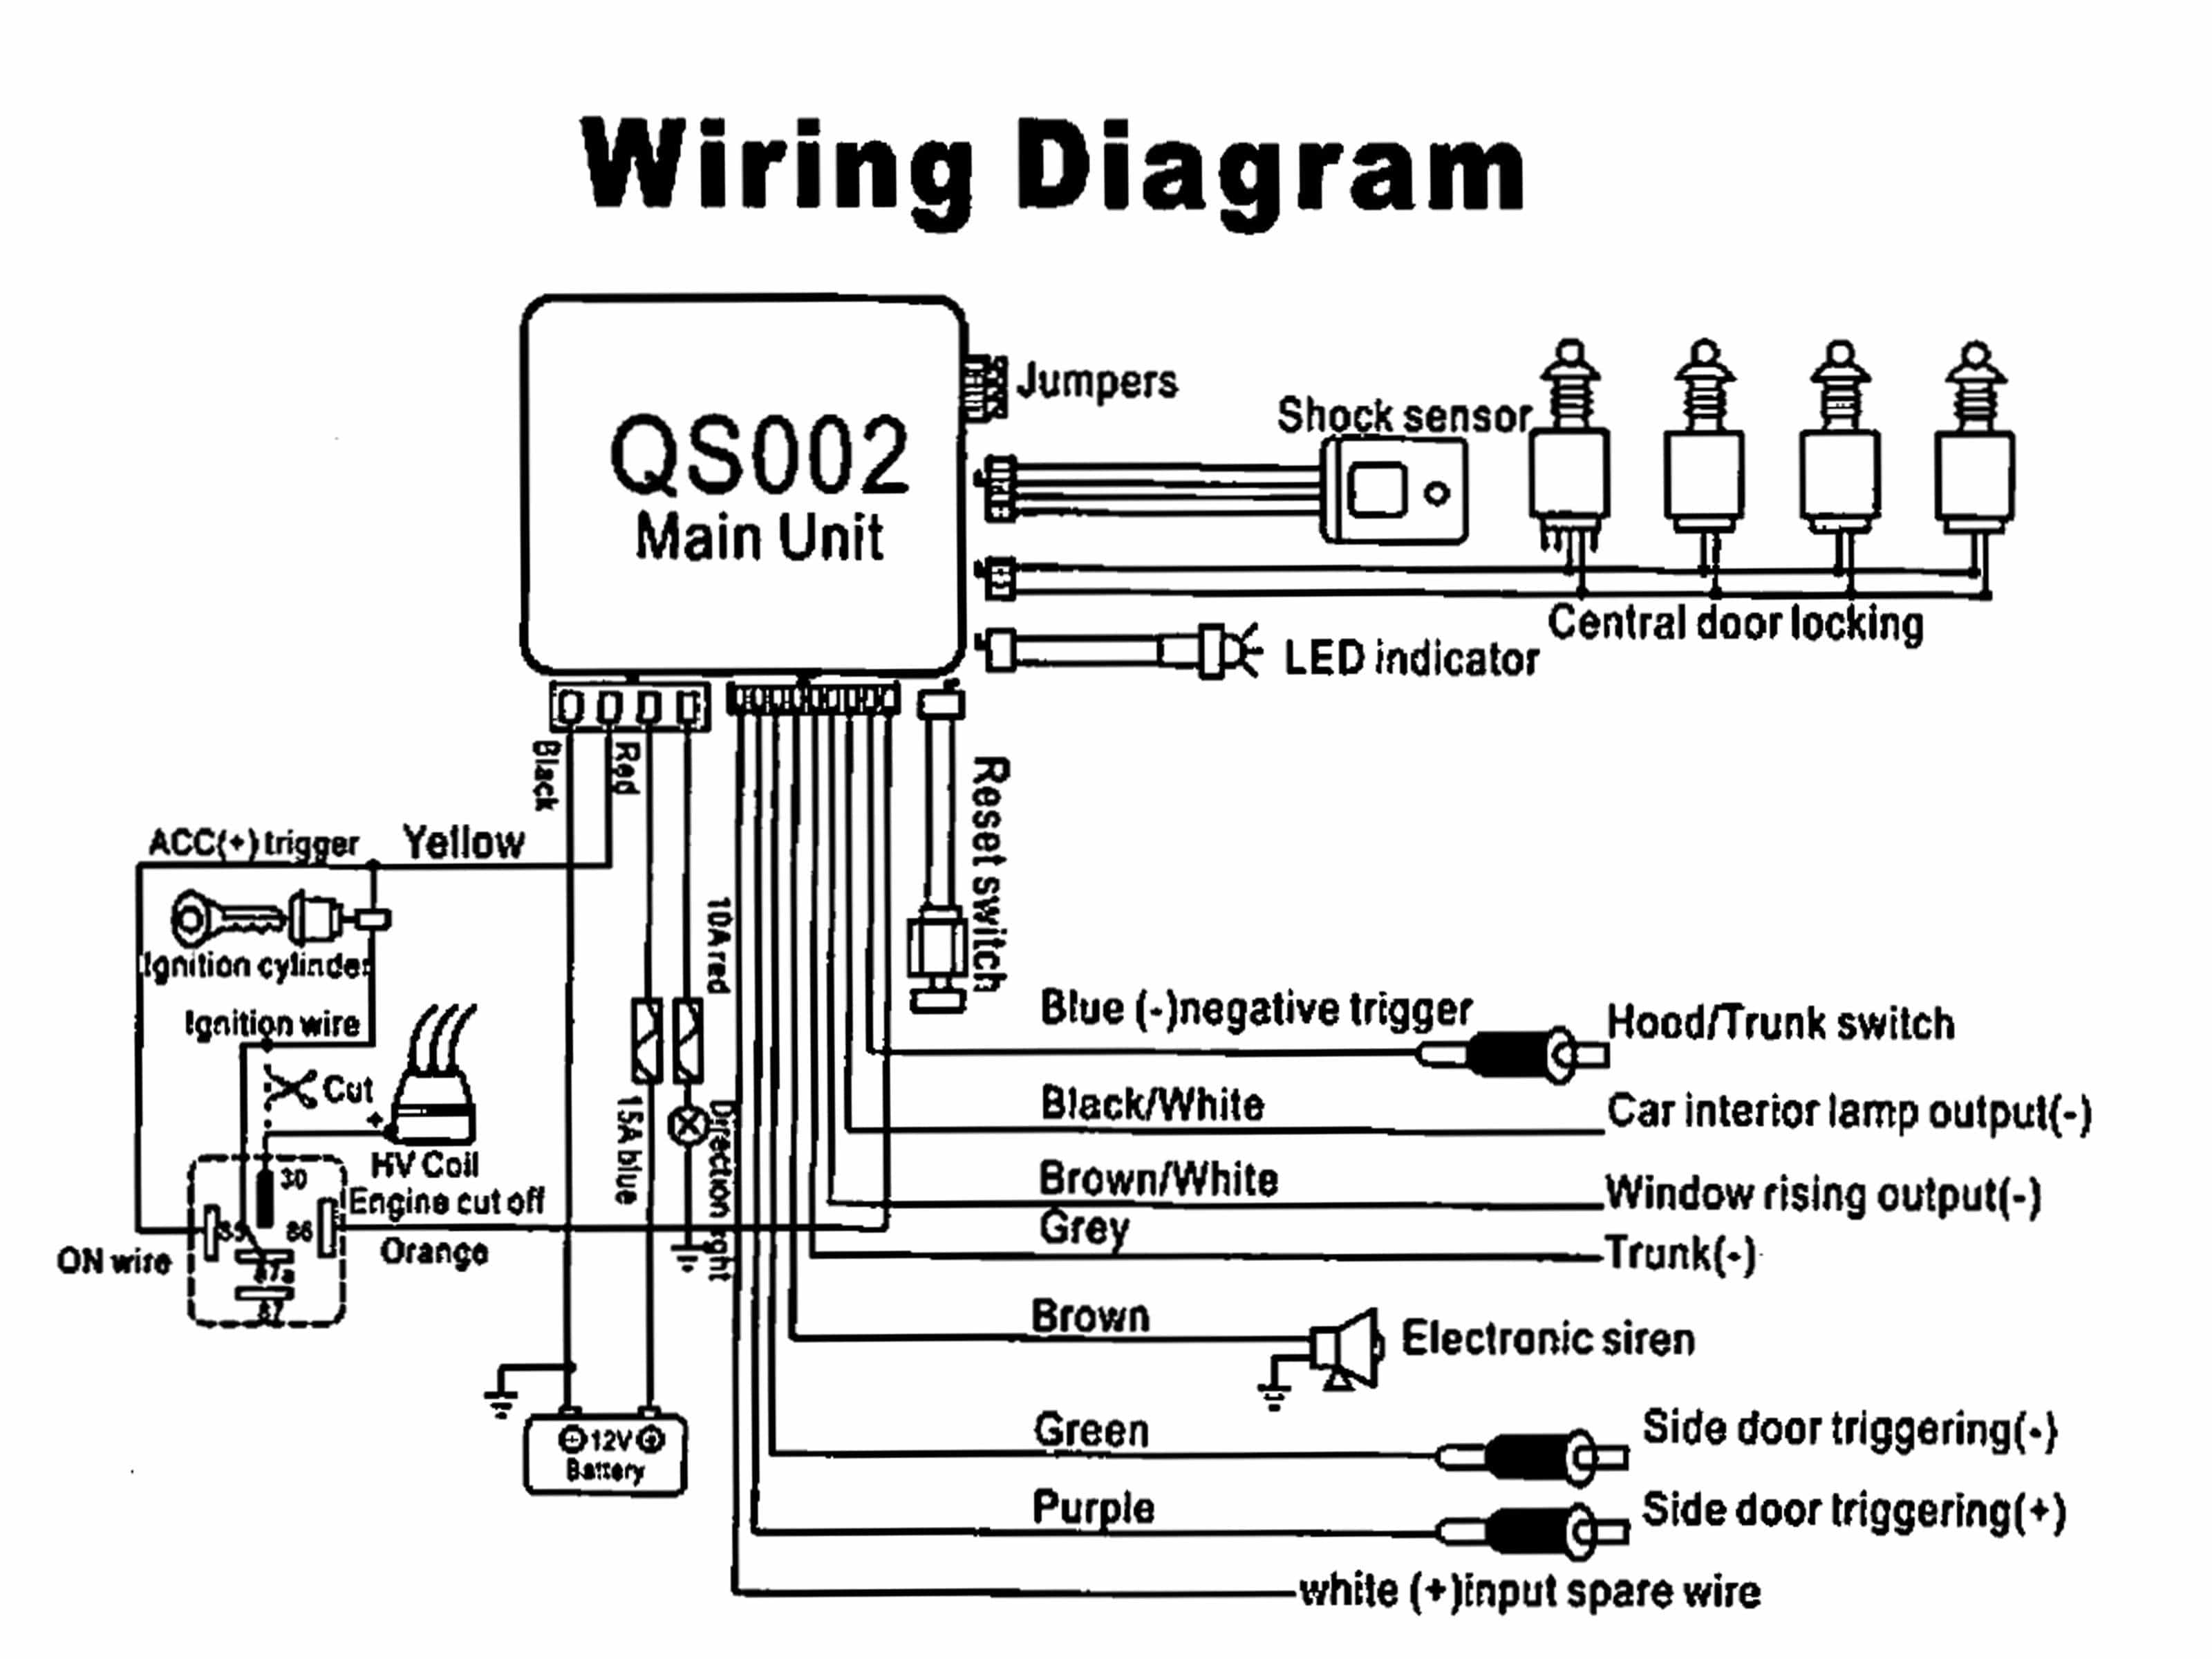 AlarmInstructions_7a98a2bc d189 4c5b 99b3 c774abdbef28 clarion cmd5 wiring diagram wiring diagram shrutiradio  at bayanpartner.co